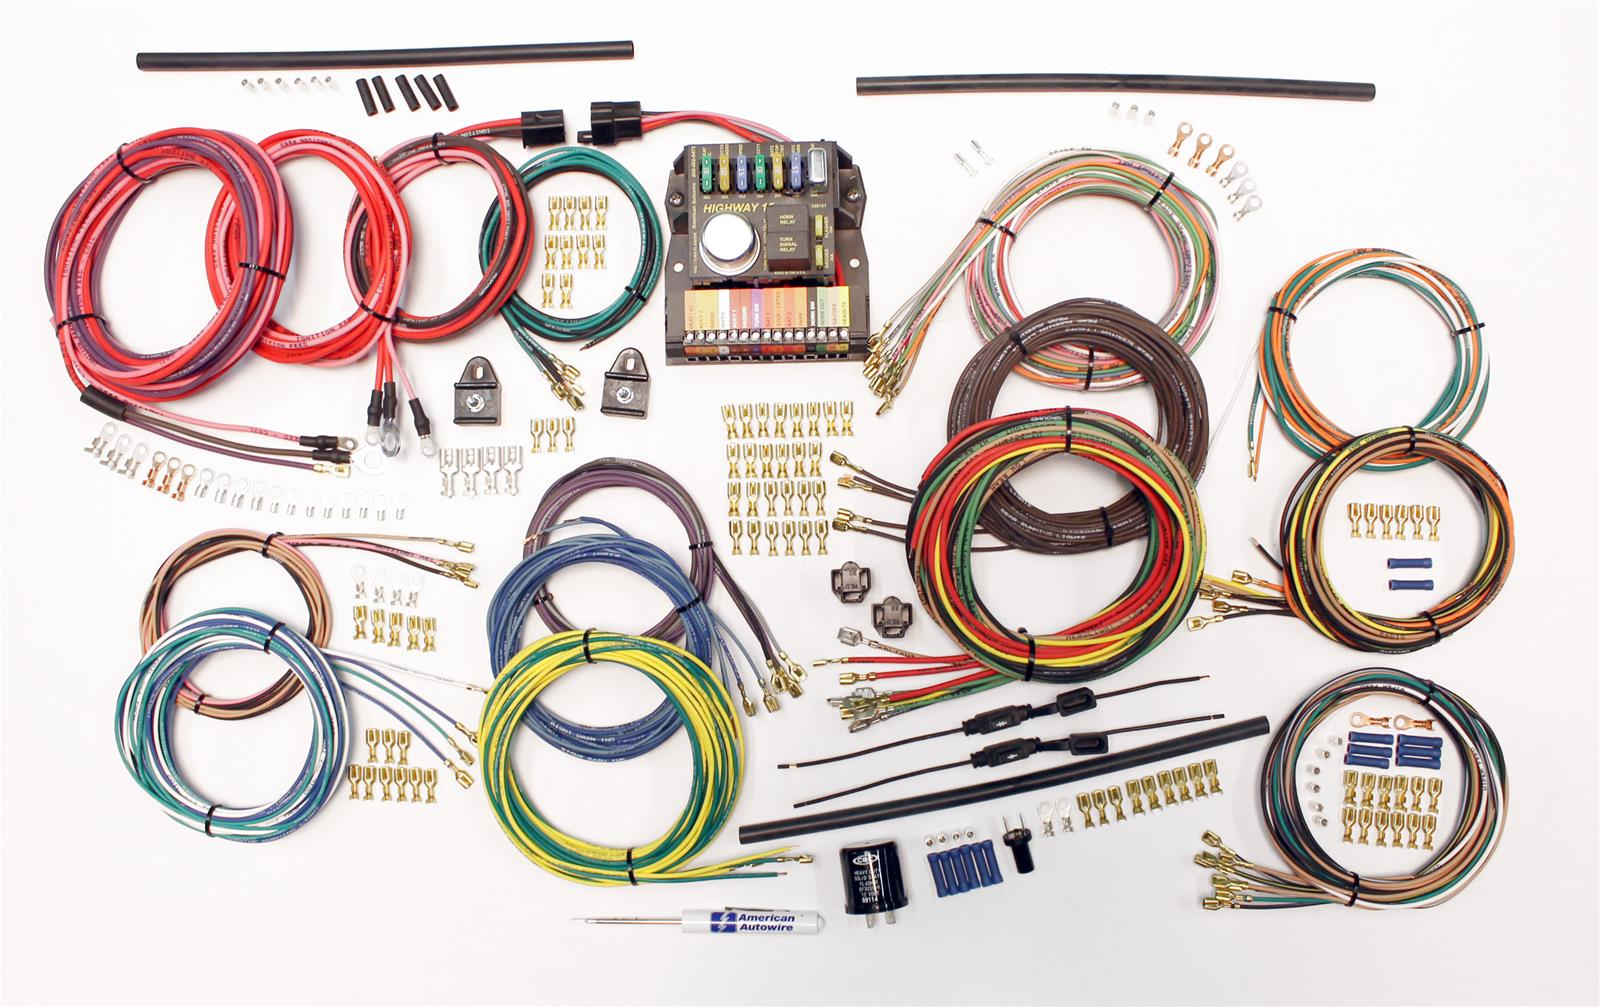 Vw Wiring Harness Kits Diagram Data 72 Volkswagen Beetle American Autowire Classic Update Series 510419 Bug Complete